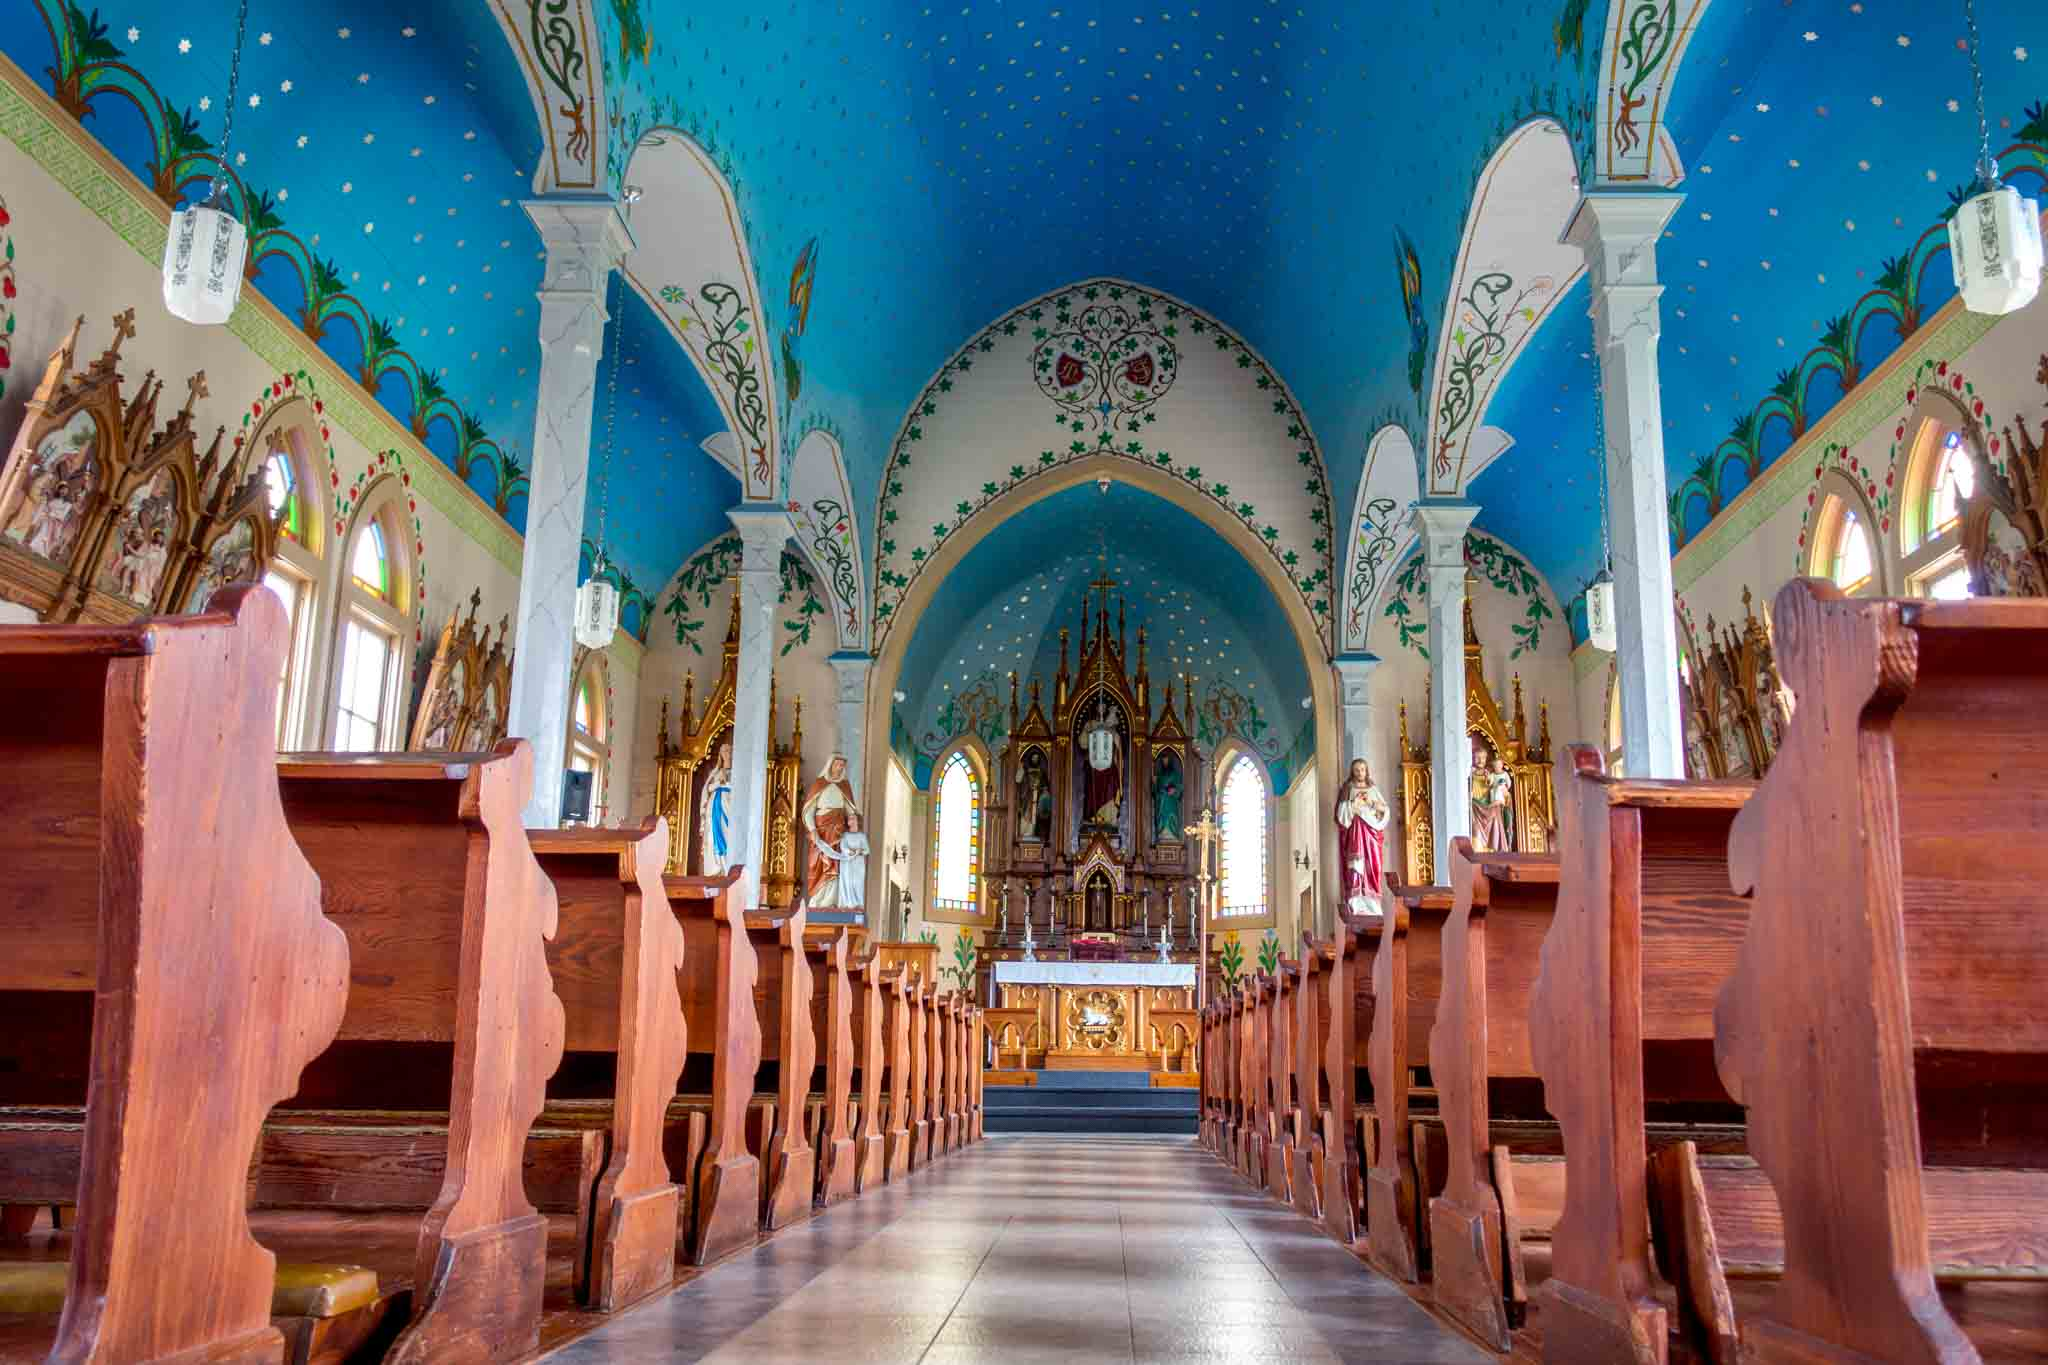 Church interior with a blue ceiling painted with stars